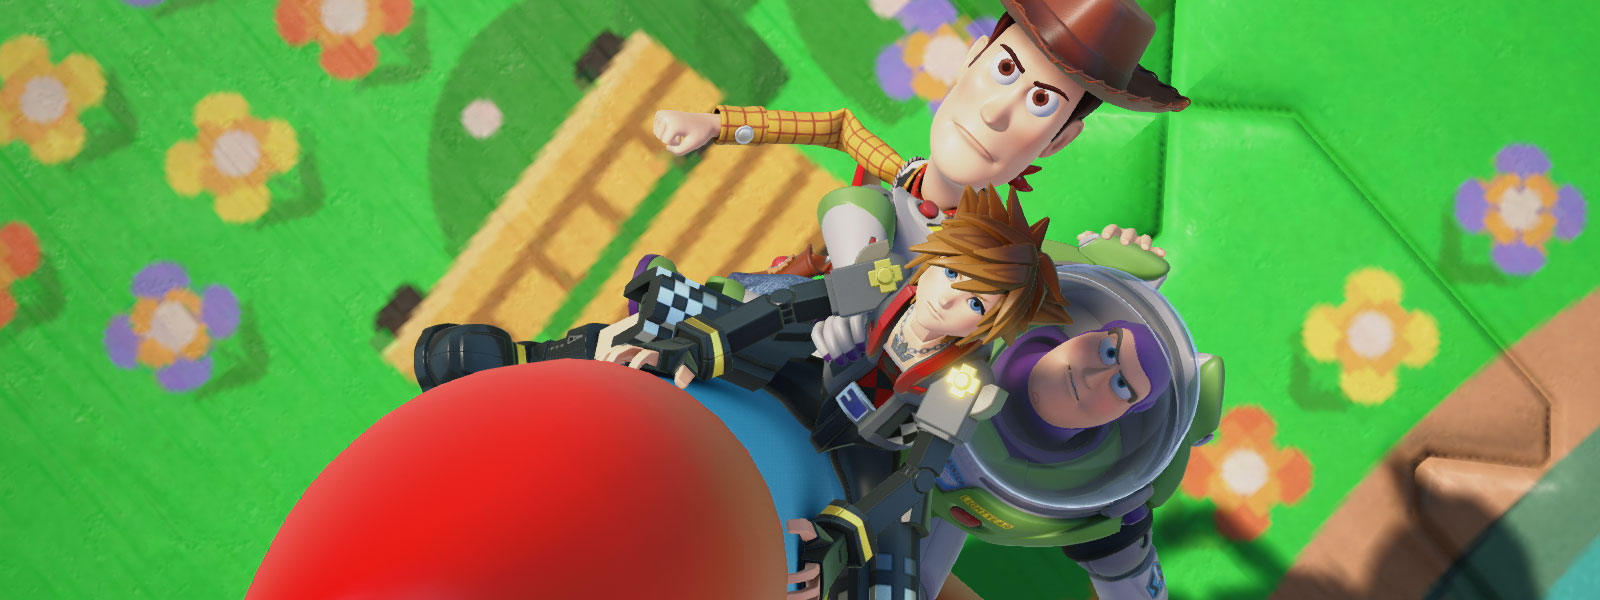 Sora, Woody and Buzz Lightyear ride on a rocket in Toy Story World